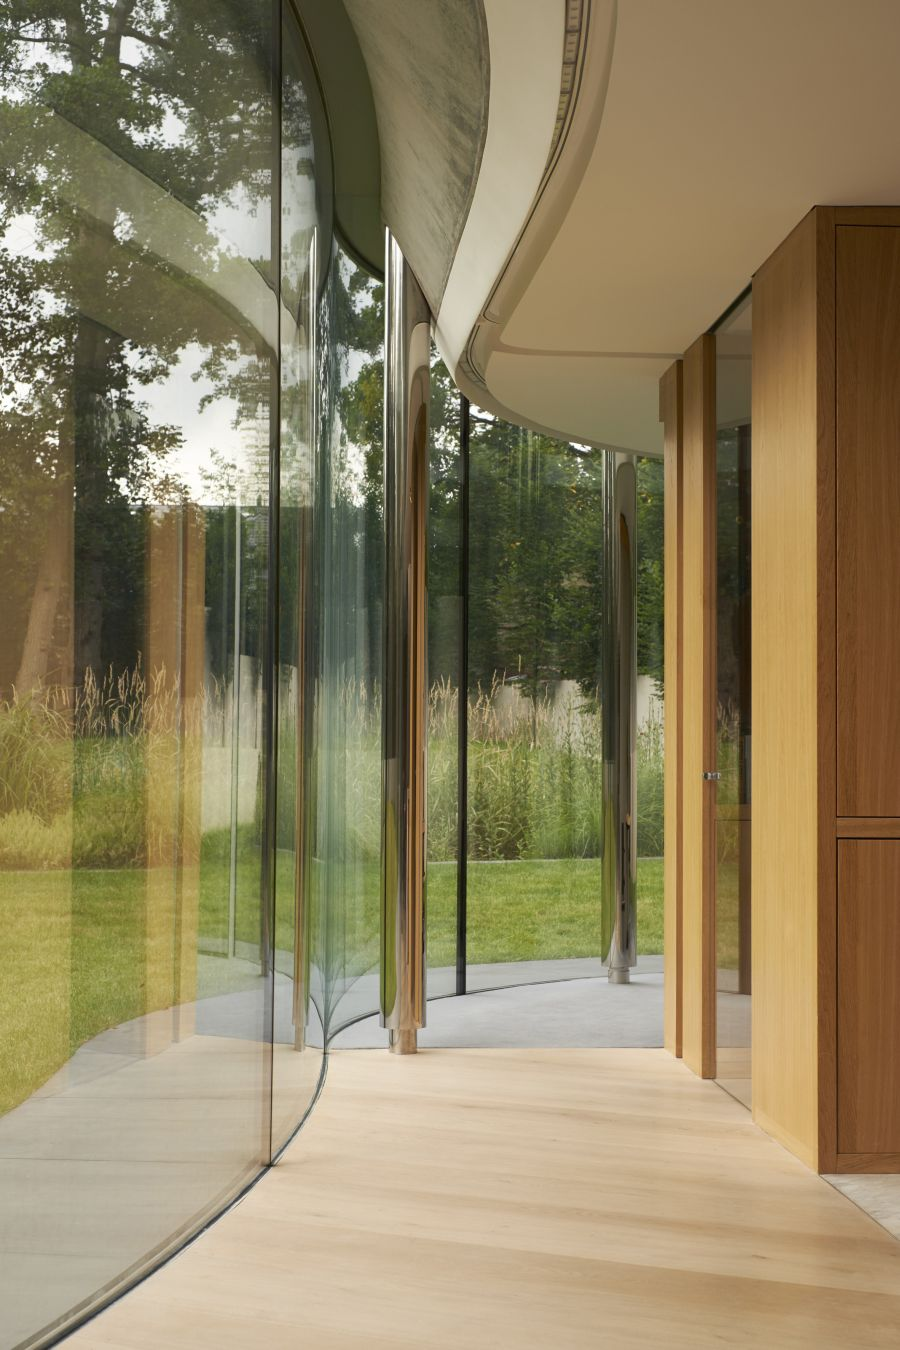 The curved glass facade creates a very immersive decor, allowing the landscape to envelop the house